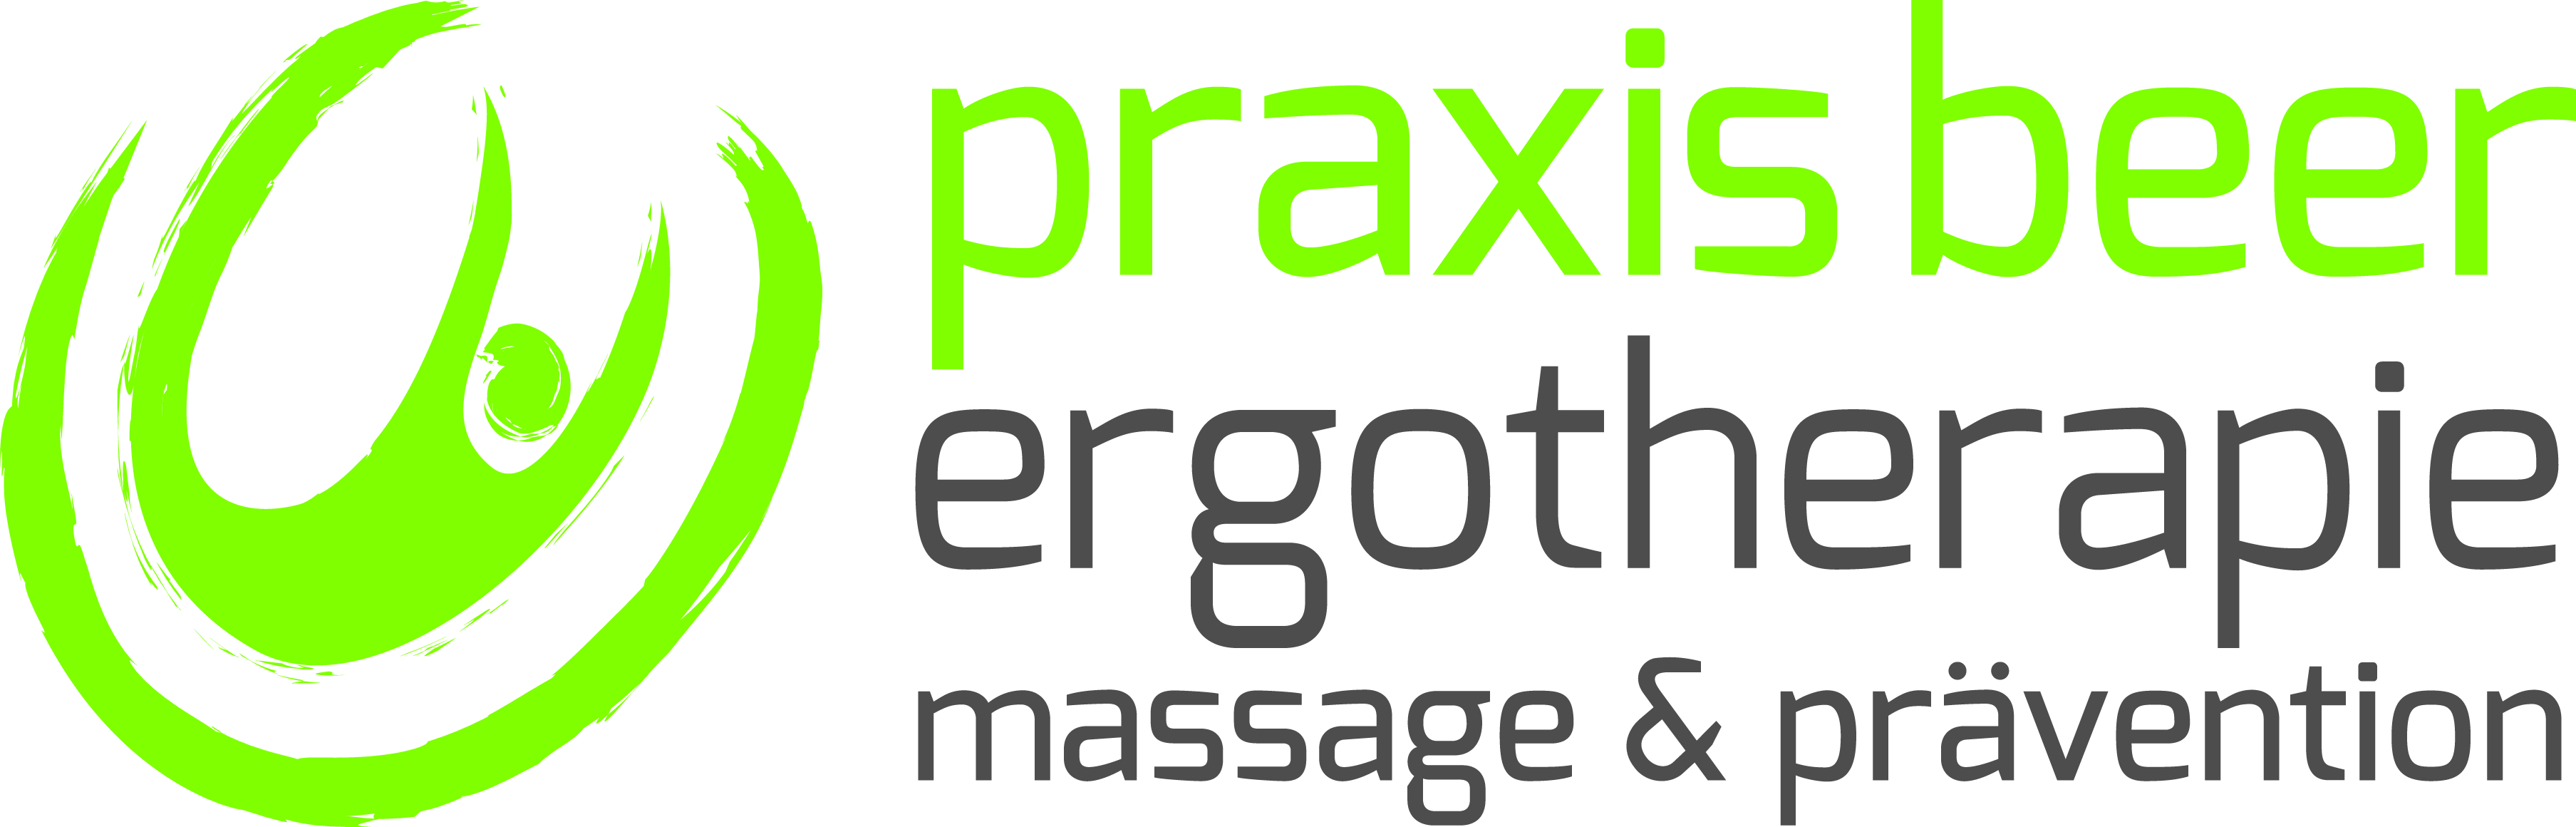 Praxis Beer - Ergotherapie, Massage & Prävention